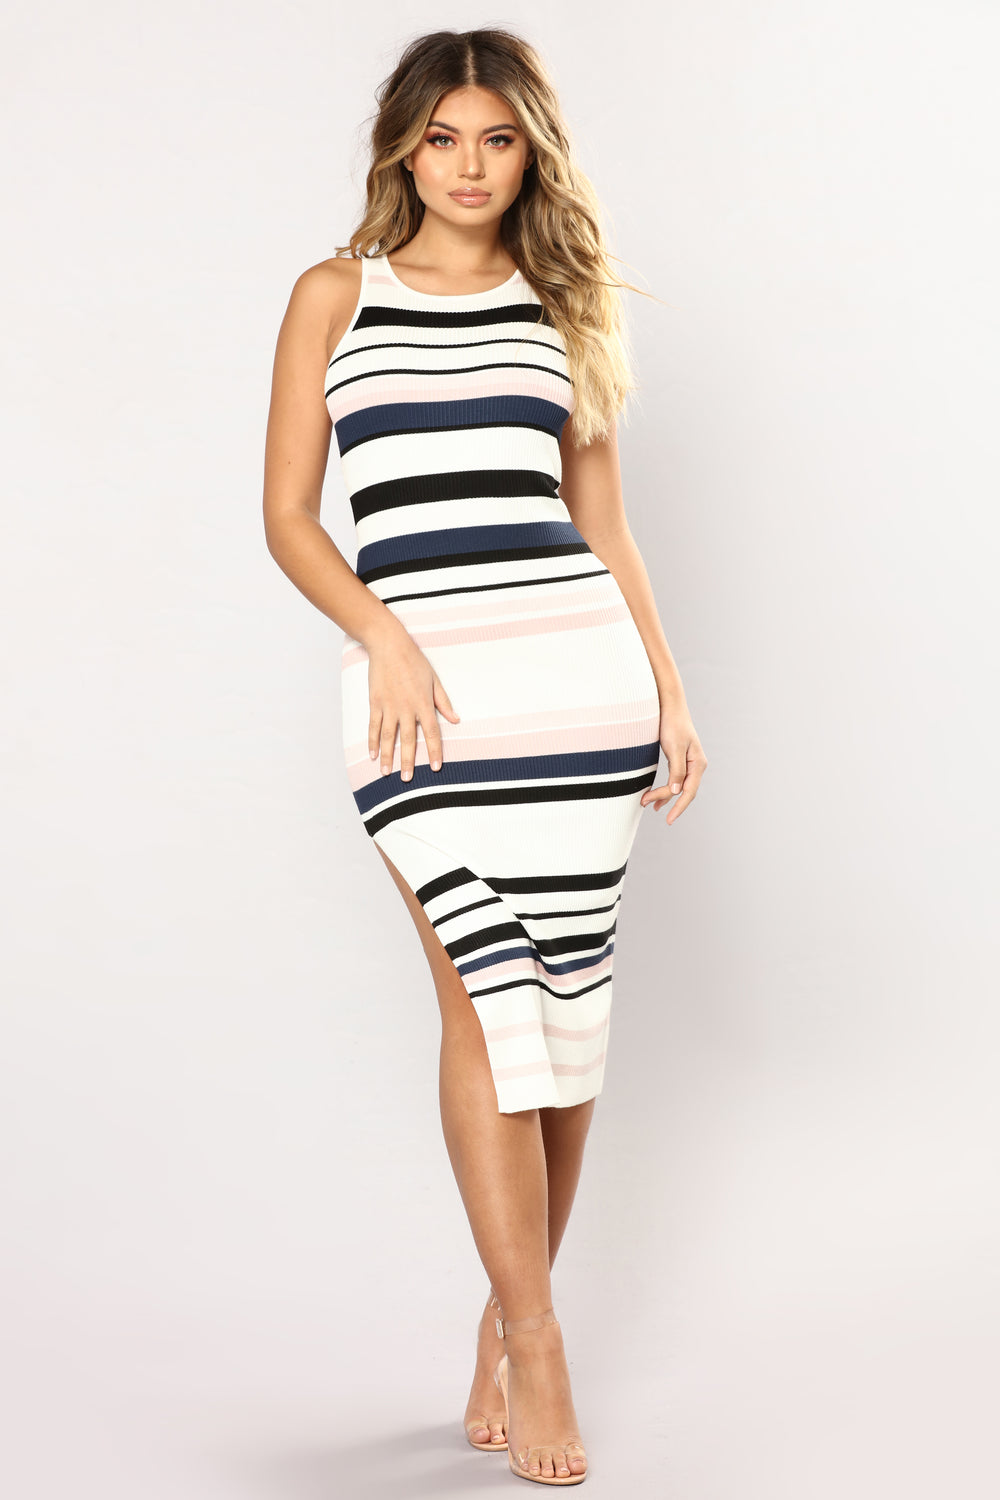 Amily Stripe Dress - Ivory/Blush